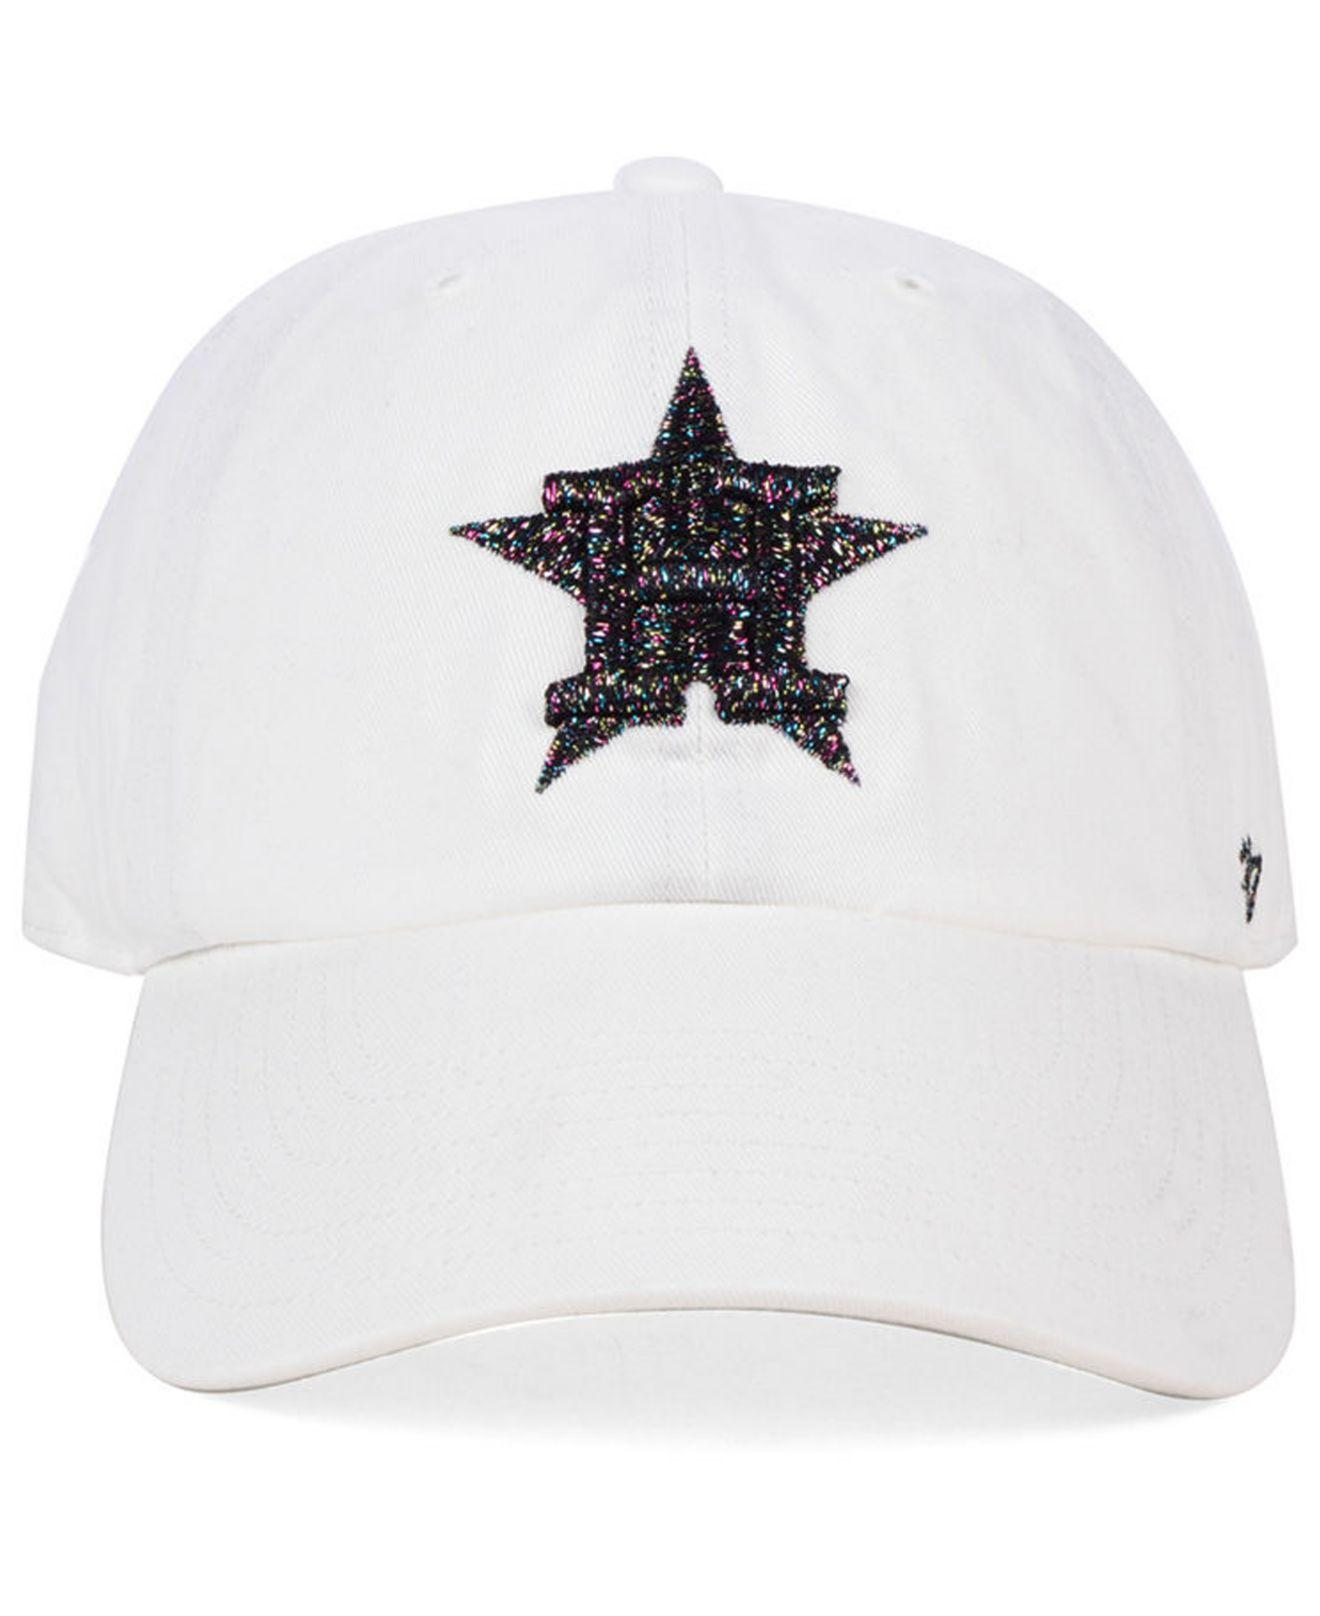 55c9c5e514f017 Lyst - 47 Brand Houston Astros Galactic Clean Up Cap in White for Men